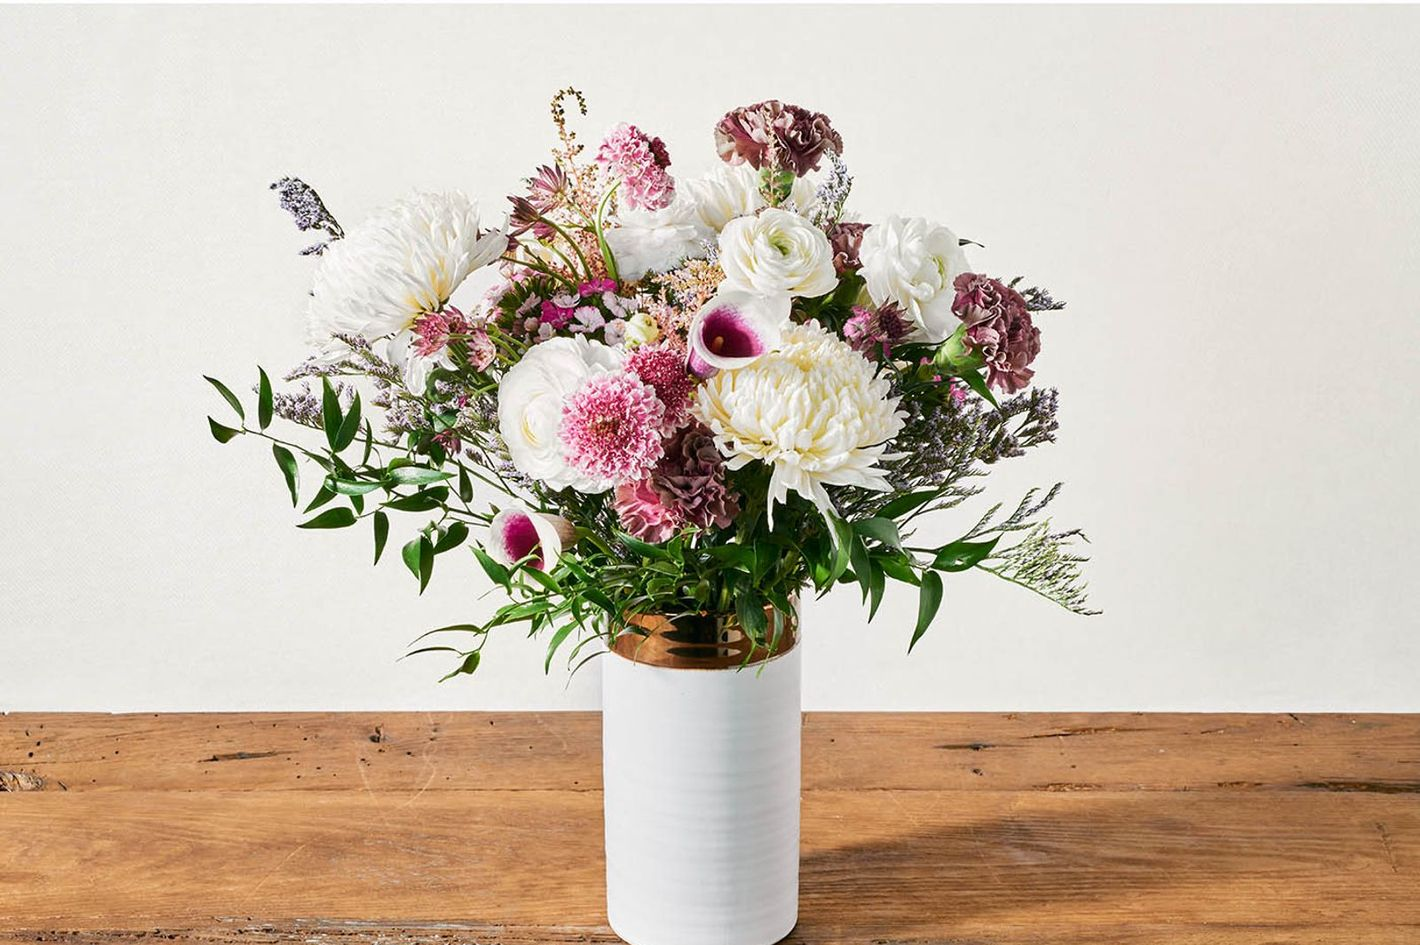 e45f12e02ac02 6 Best Flower Delivery Services 2019